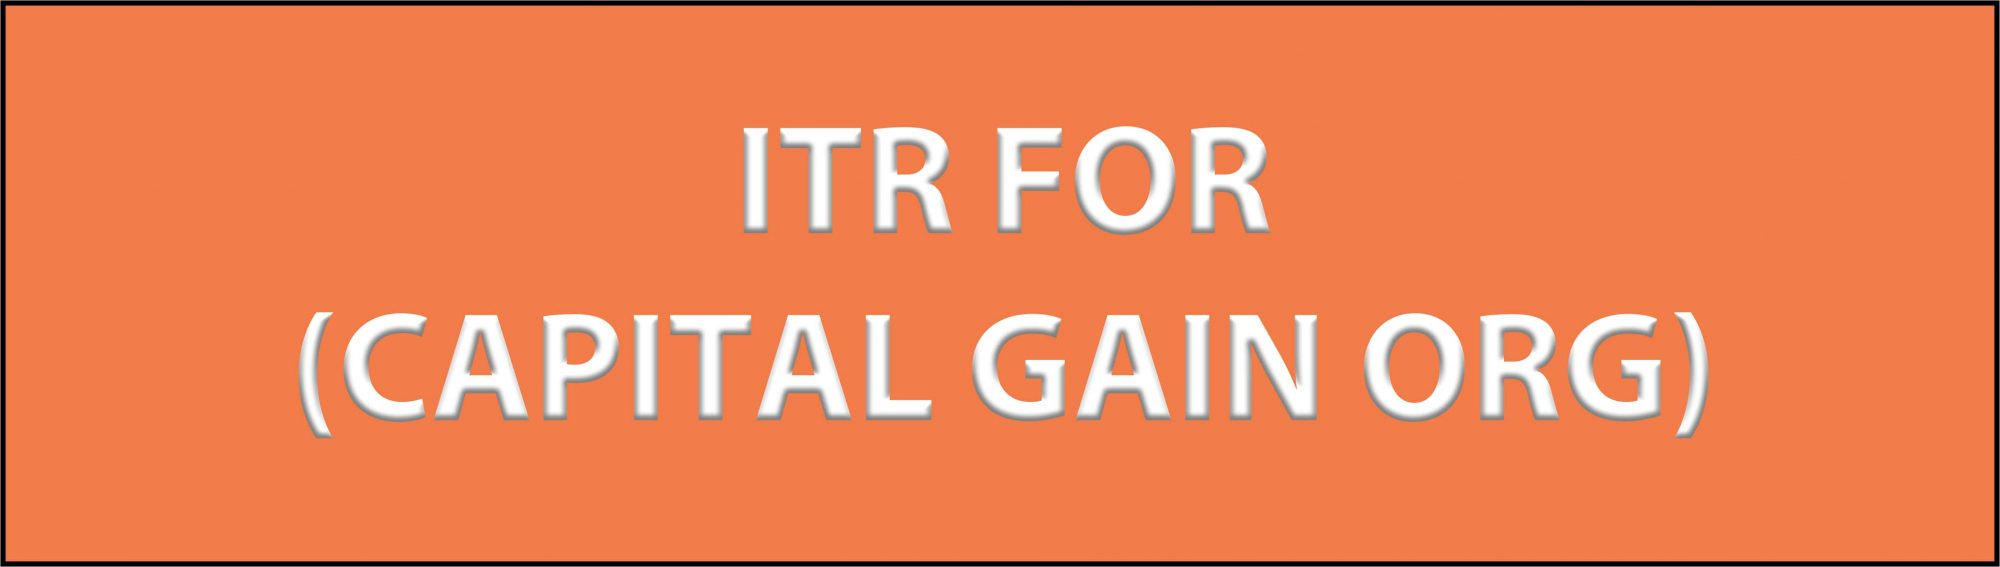 ITR FOR (CAPITAL GAIN ORG )